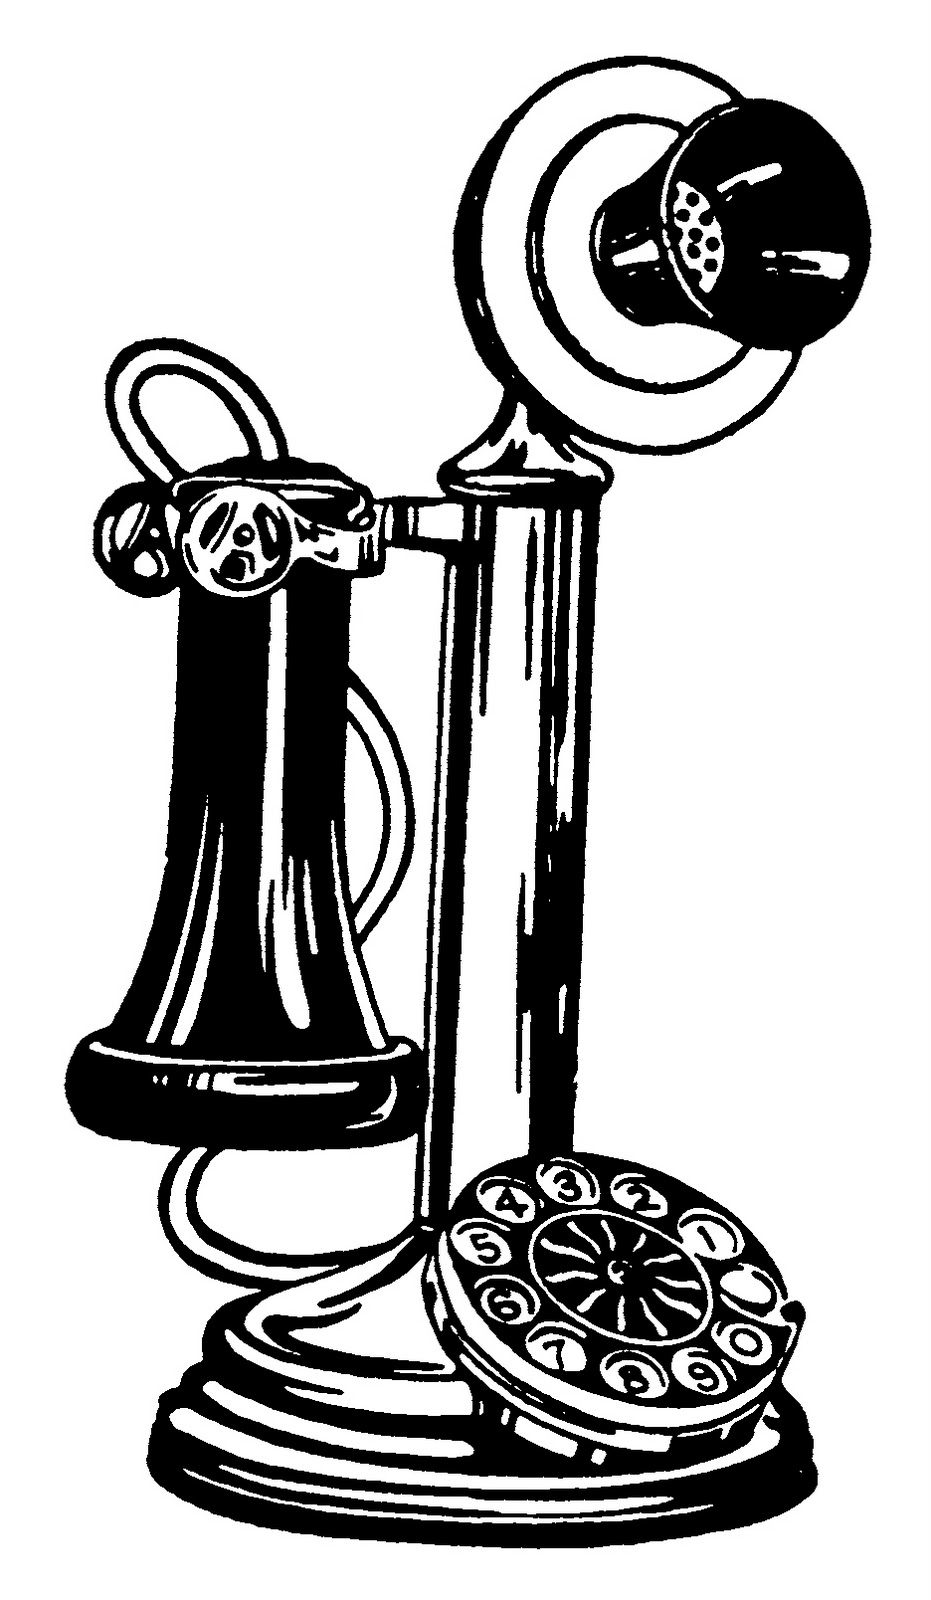 lost and found clipart phone